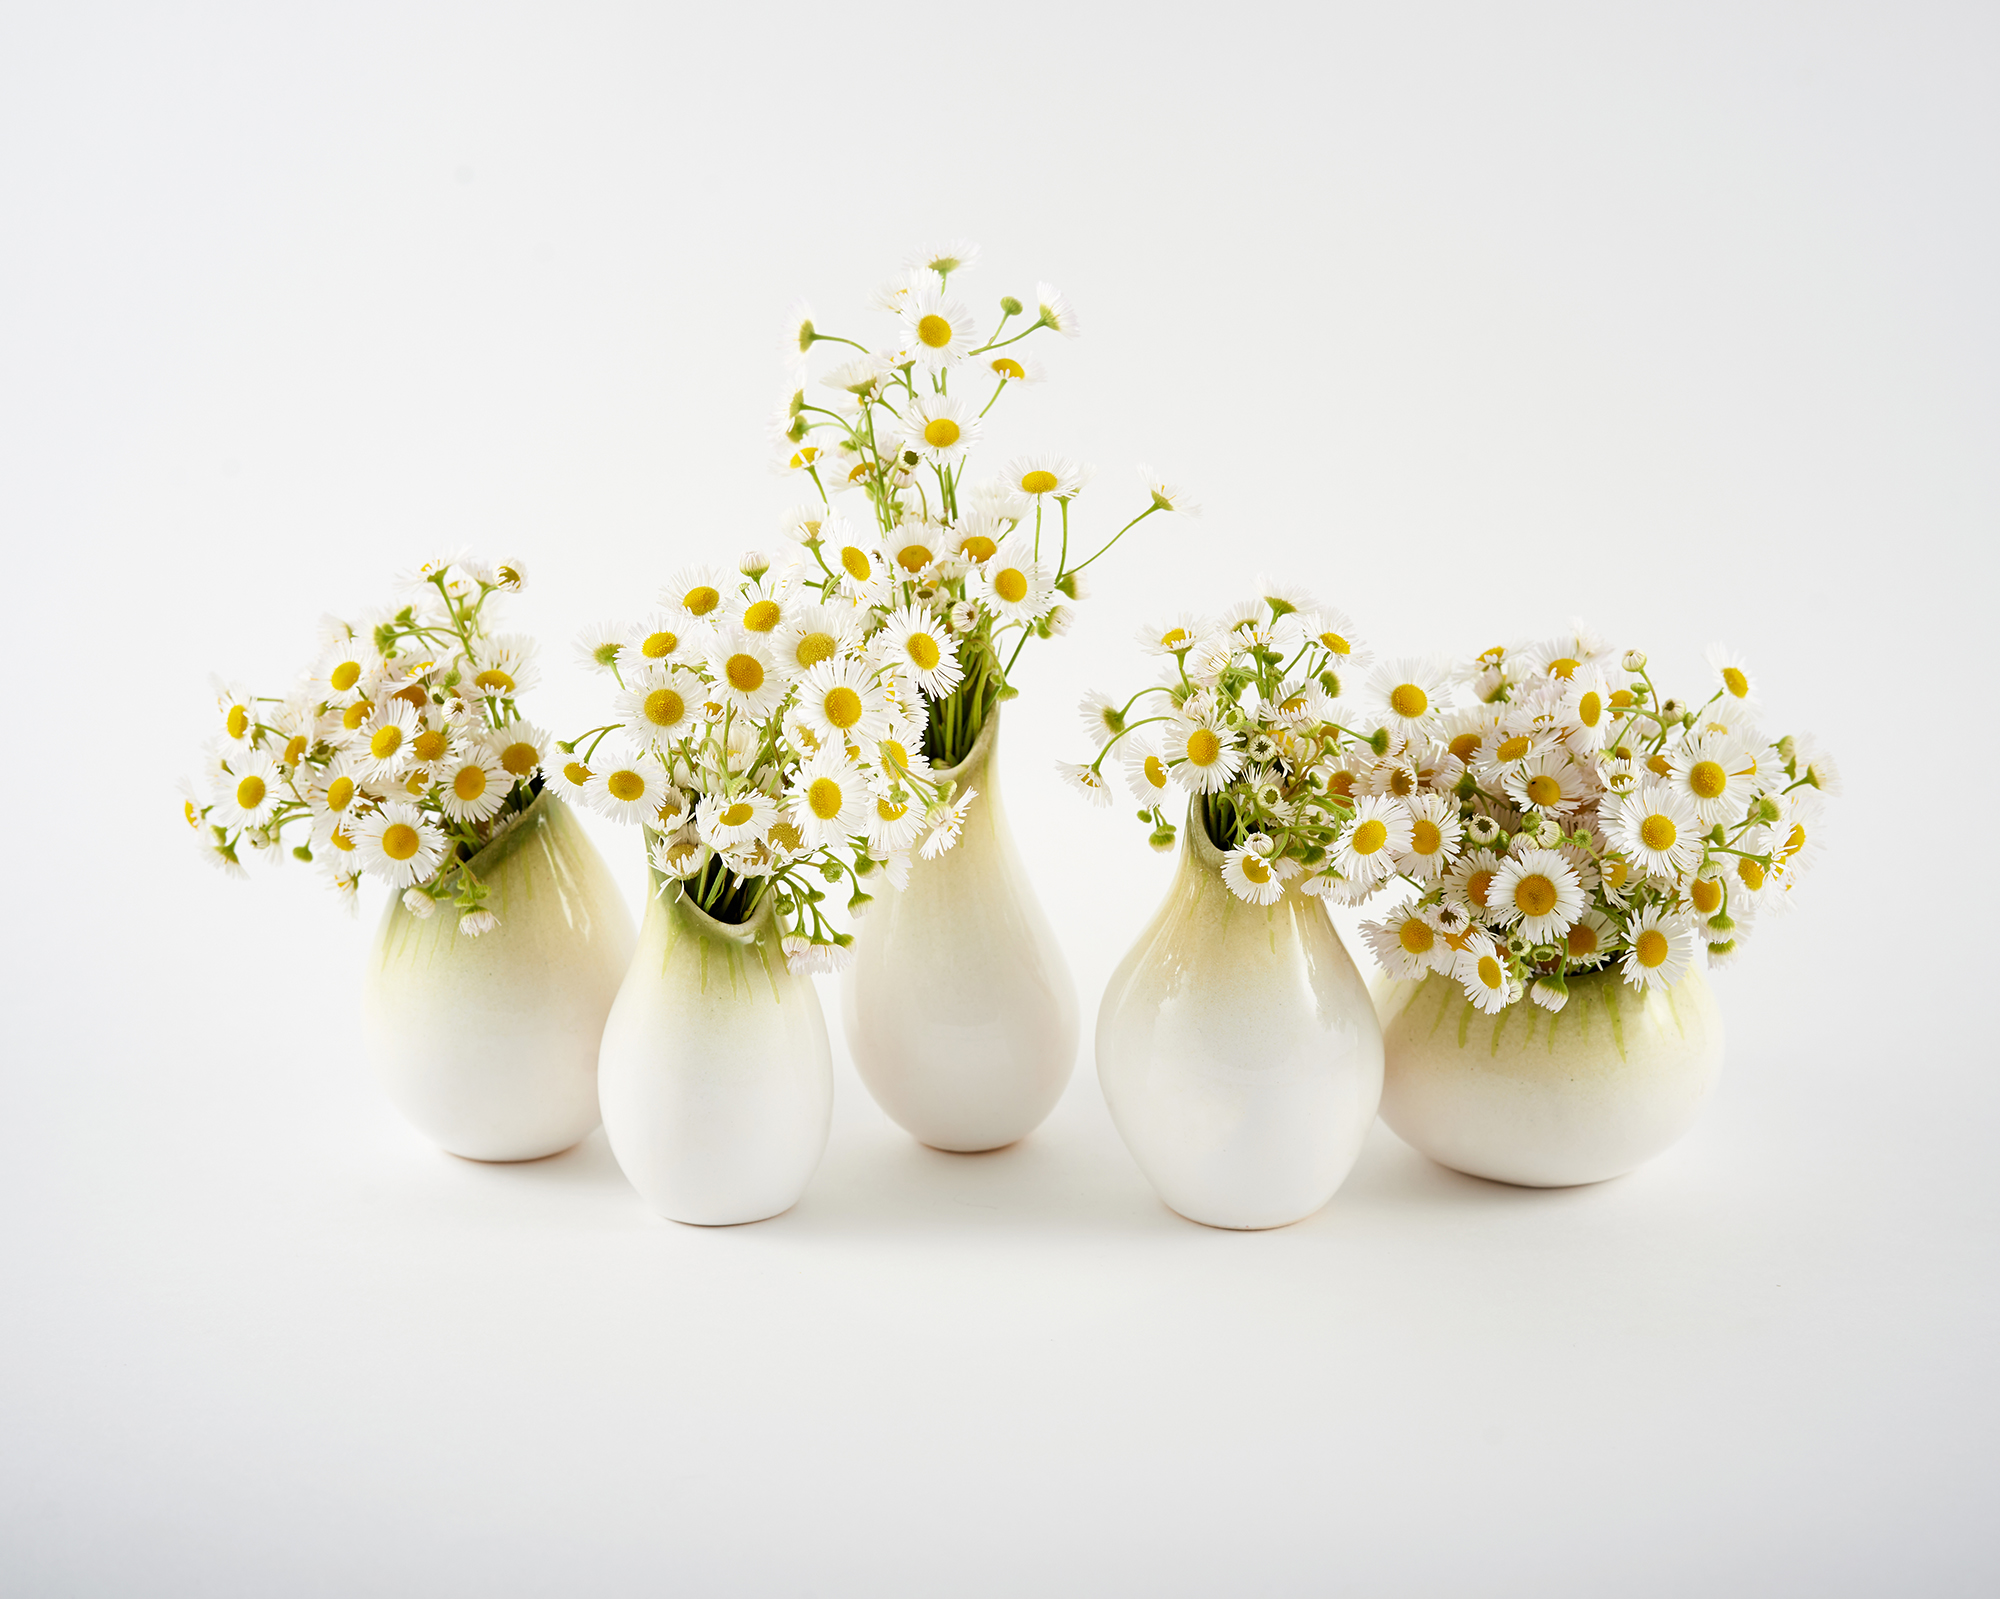 AMAI_product_vases Onion mini (1)